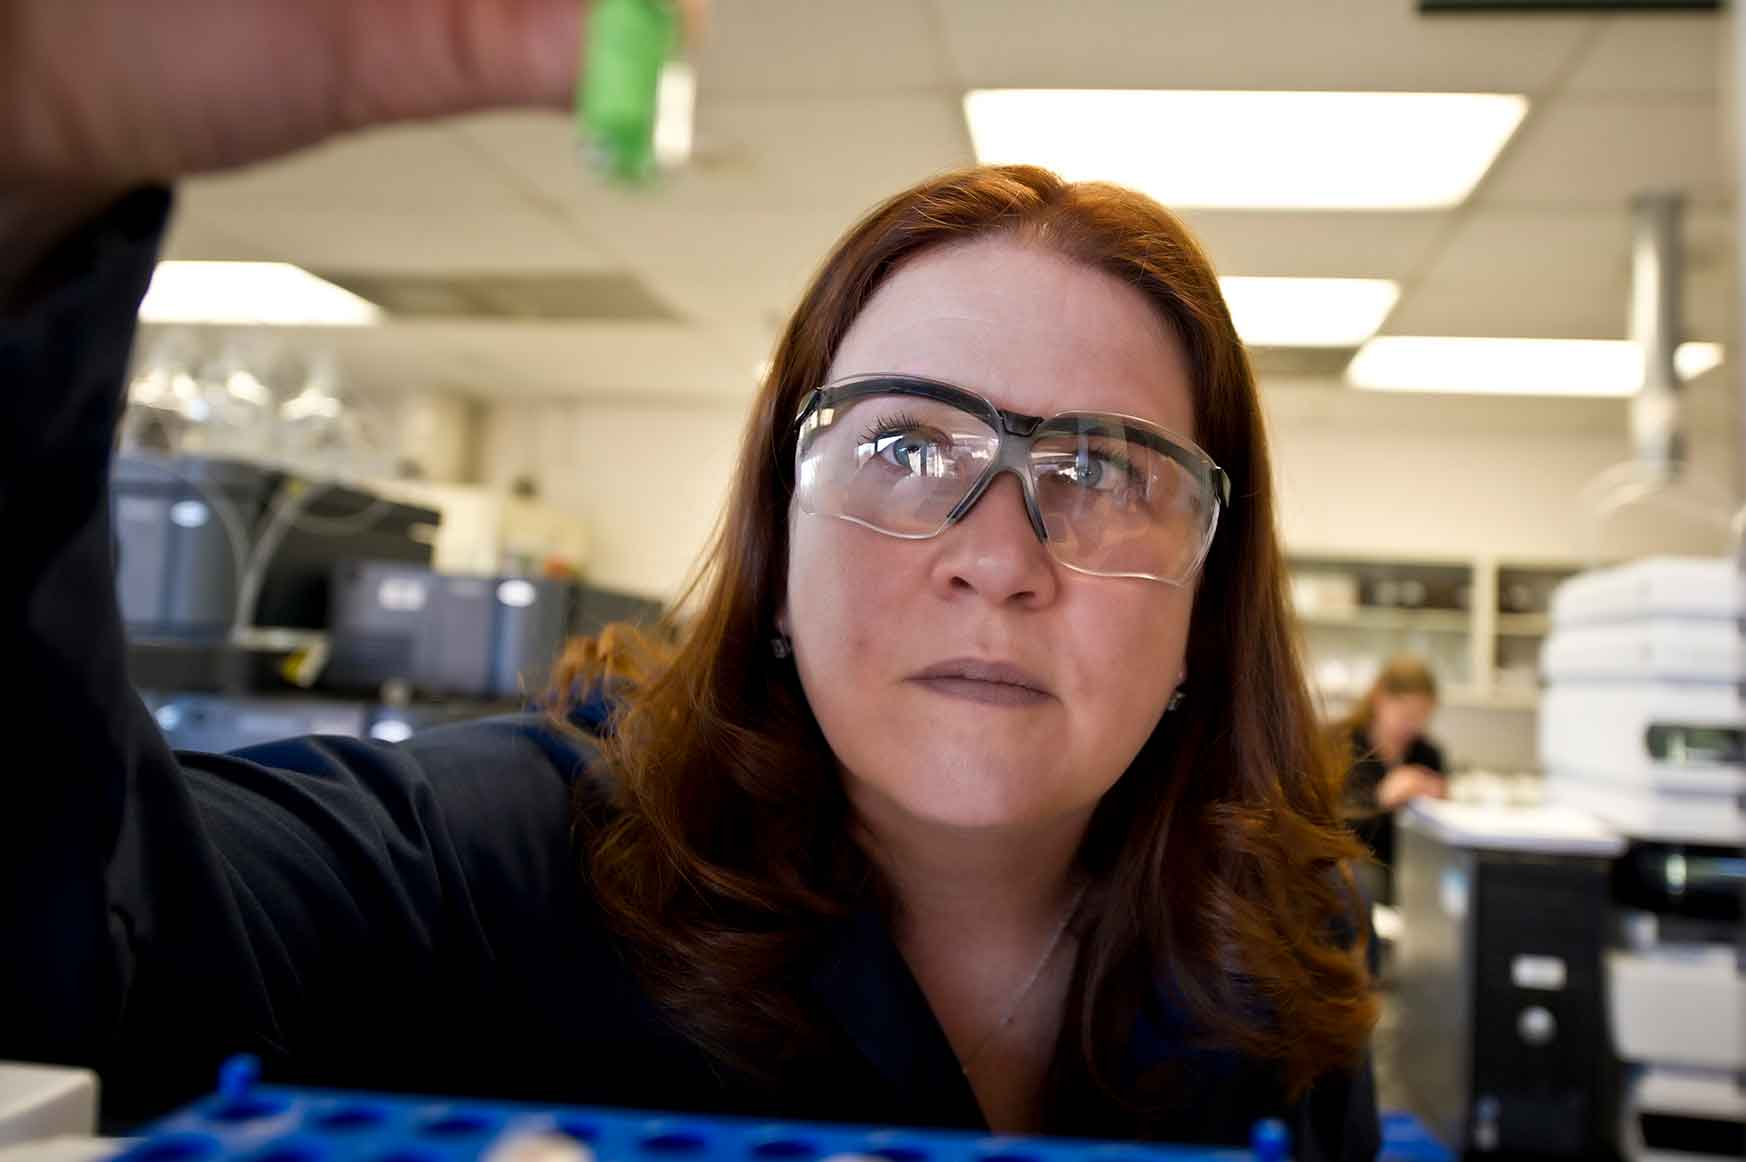 NREL Senior Scientist Teresa Alleman works in her biofuels research lab at NREL in Golden, Colorado.